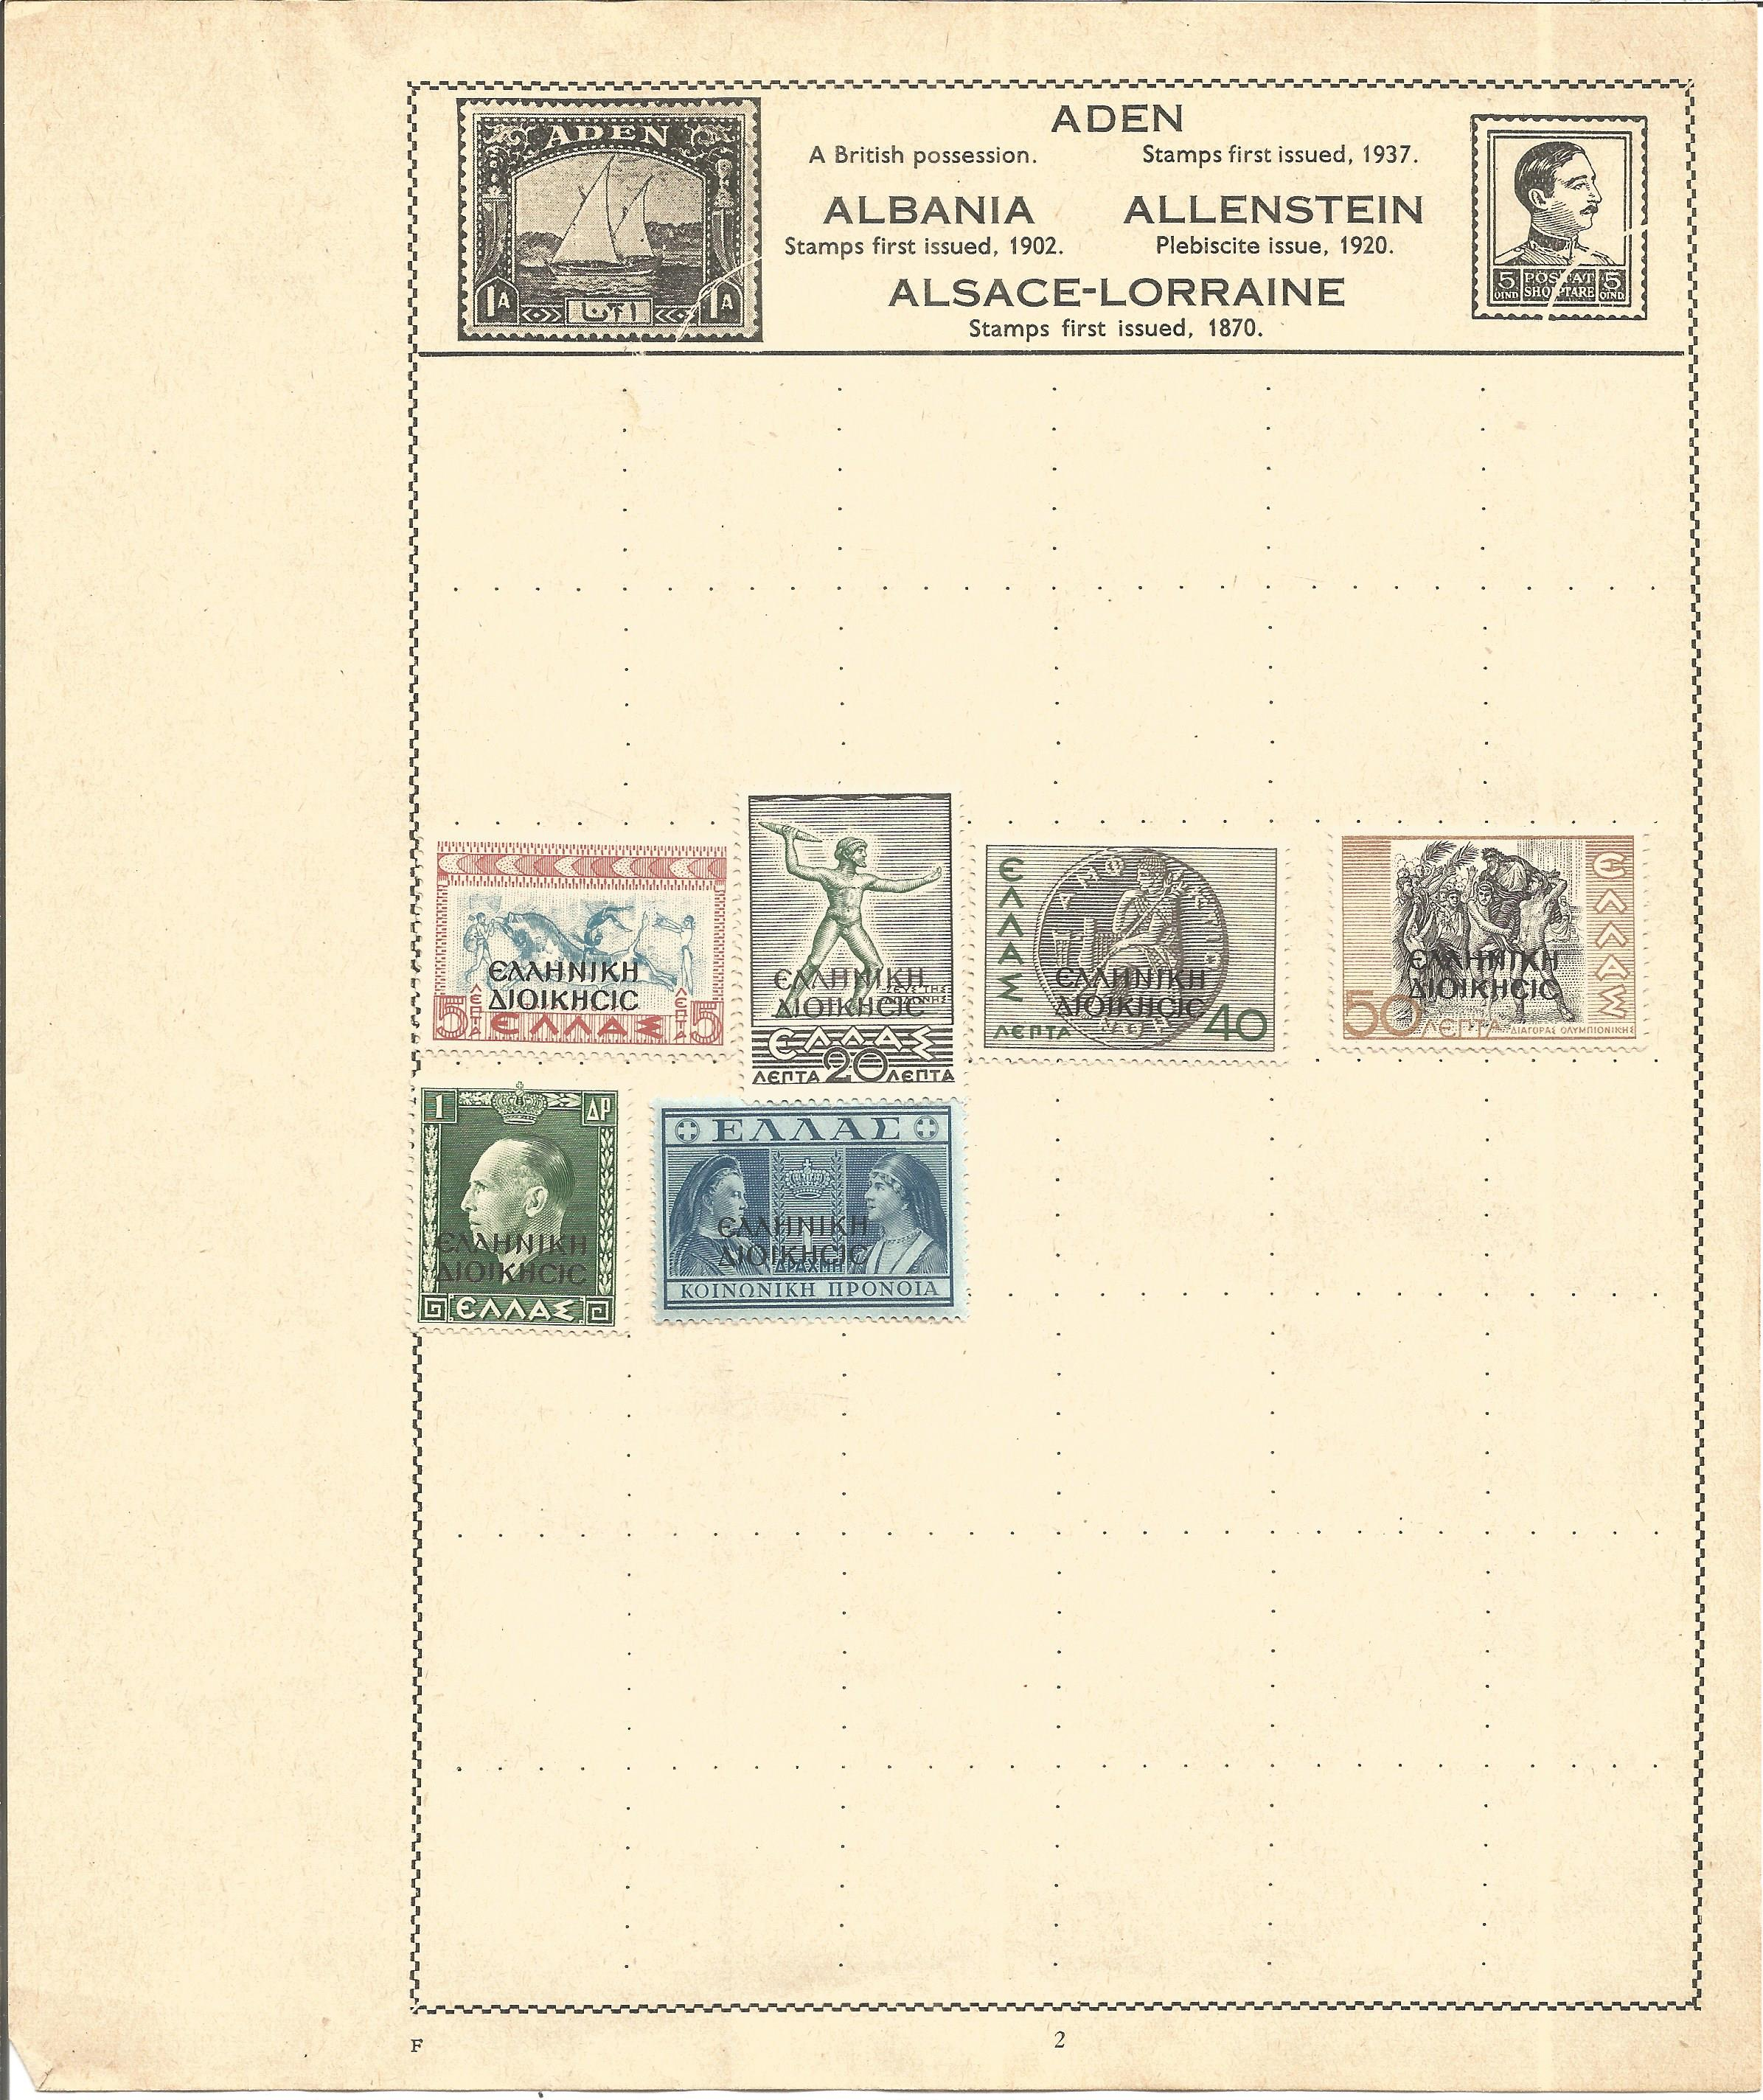 European Stamp collection 7 loose album sleeves countries include Greece and Belgium. Good - Image 3 of 3